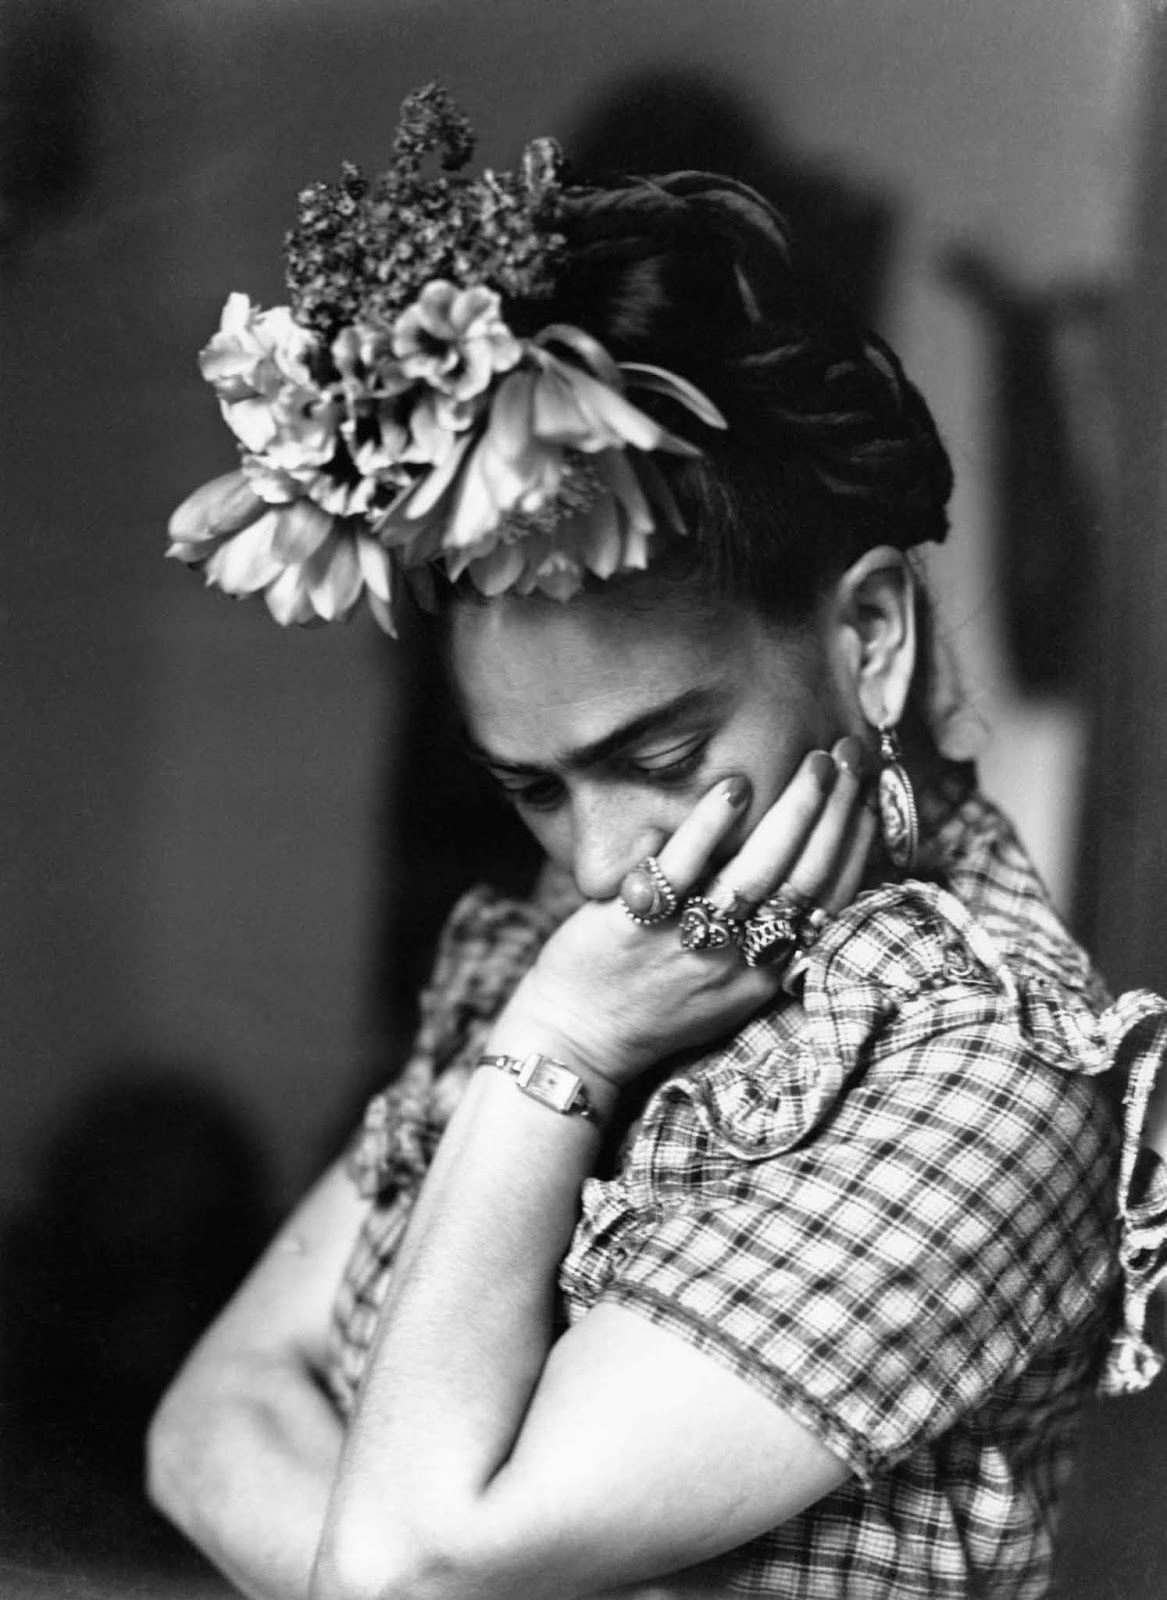 Kahlo's work as an artist remained relatively unknown until the late 1970s, when her work was rediscovered by art historians and political activists.